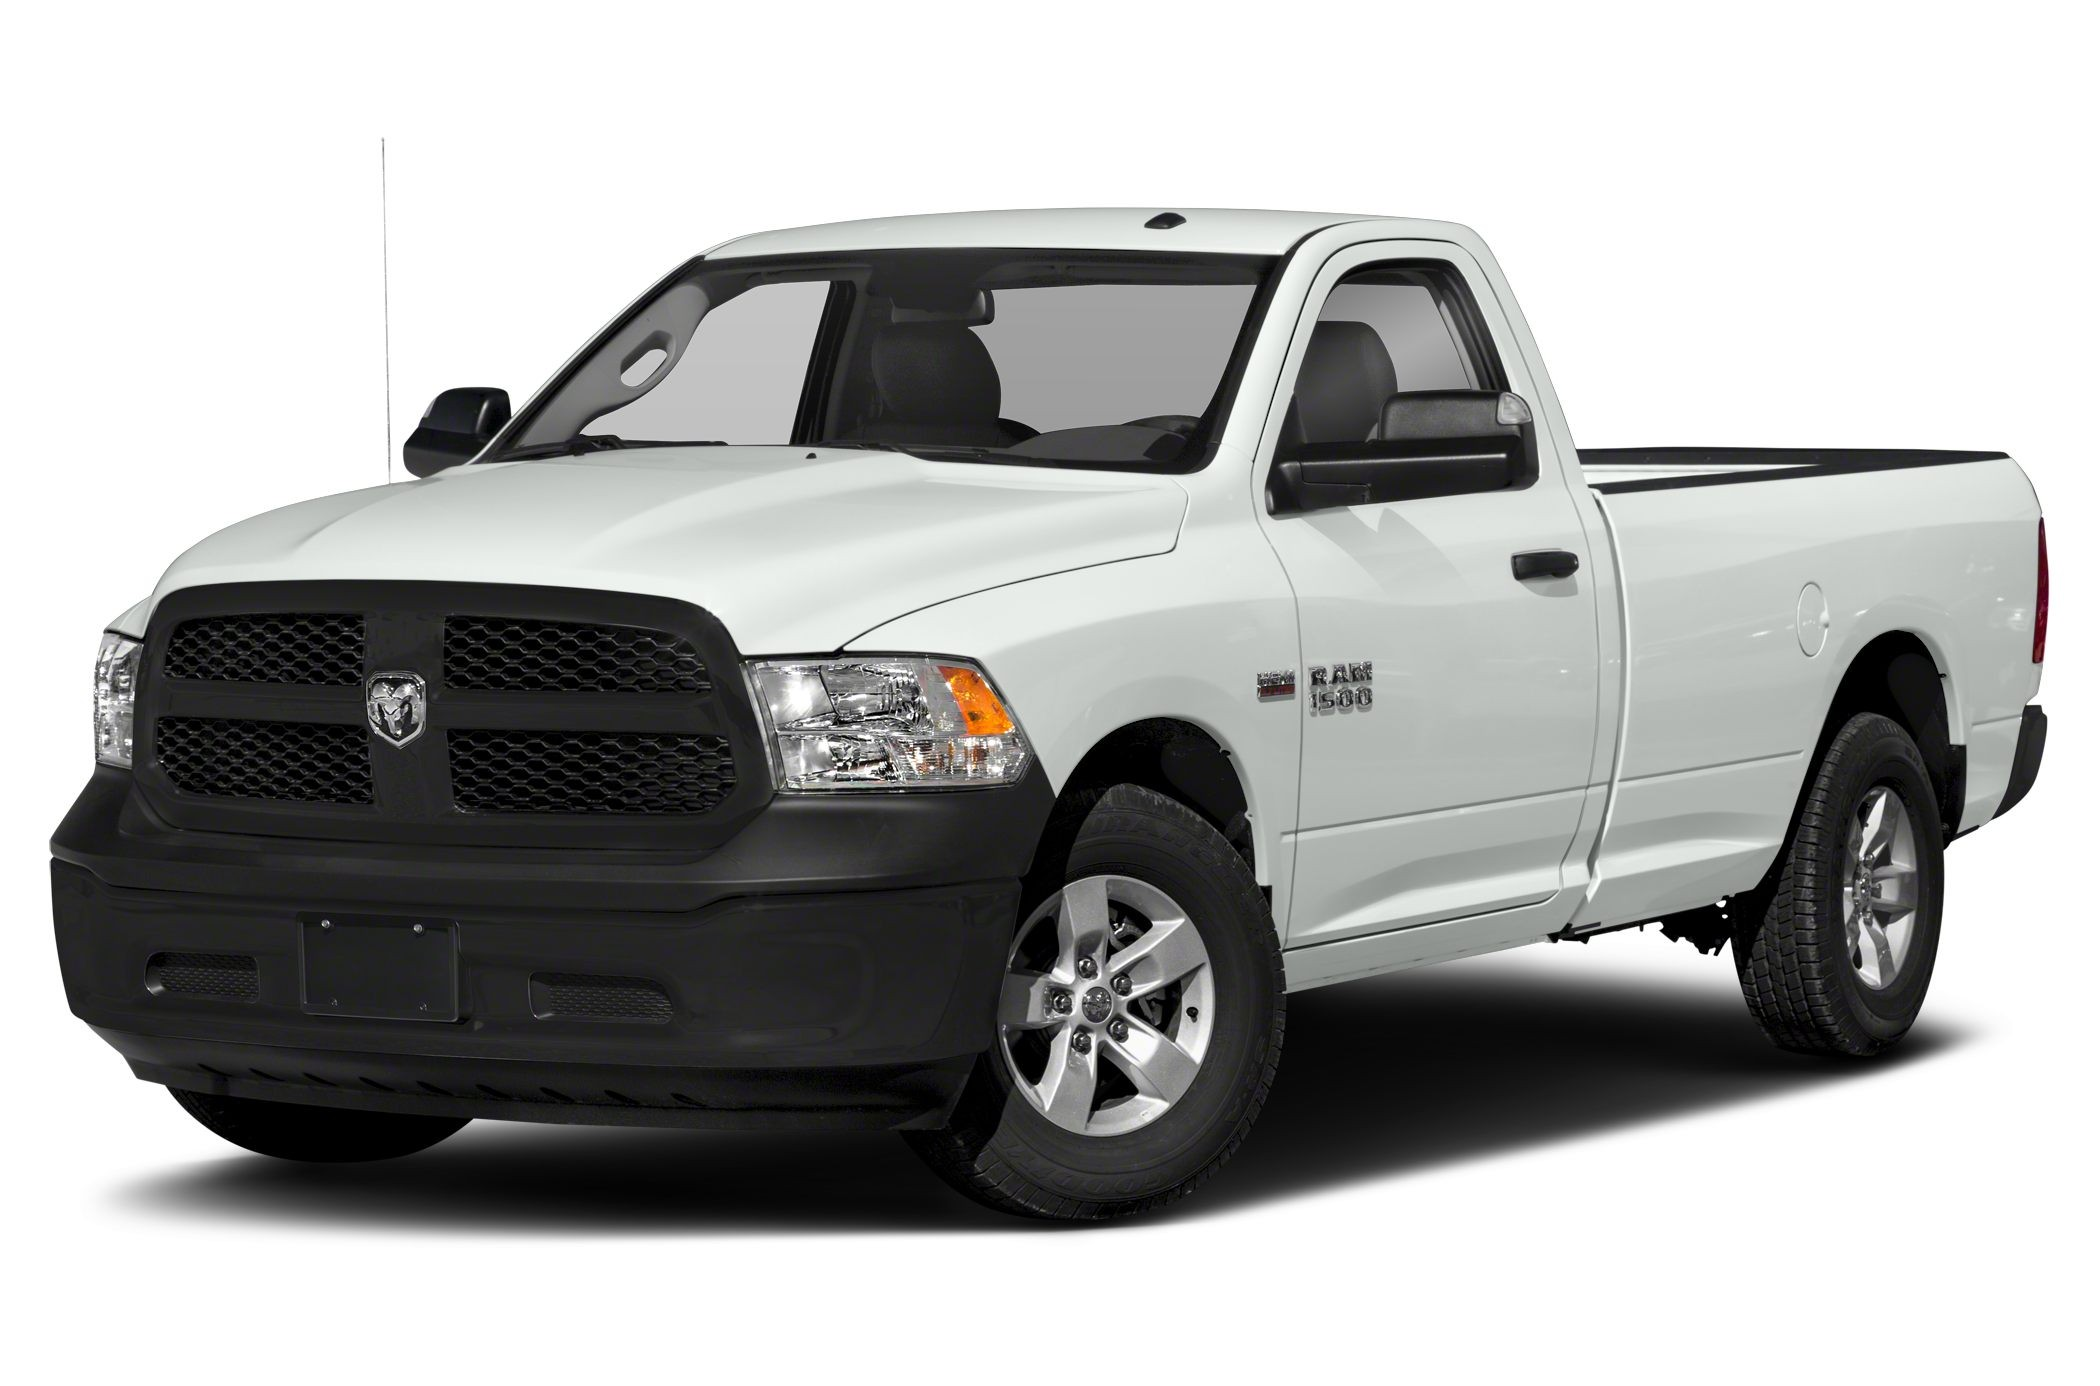 2016 Ram 1500 Schematic 2016 Ram 1500 Specs and Prices Of 2016 Ram 1500 Schematic